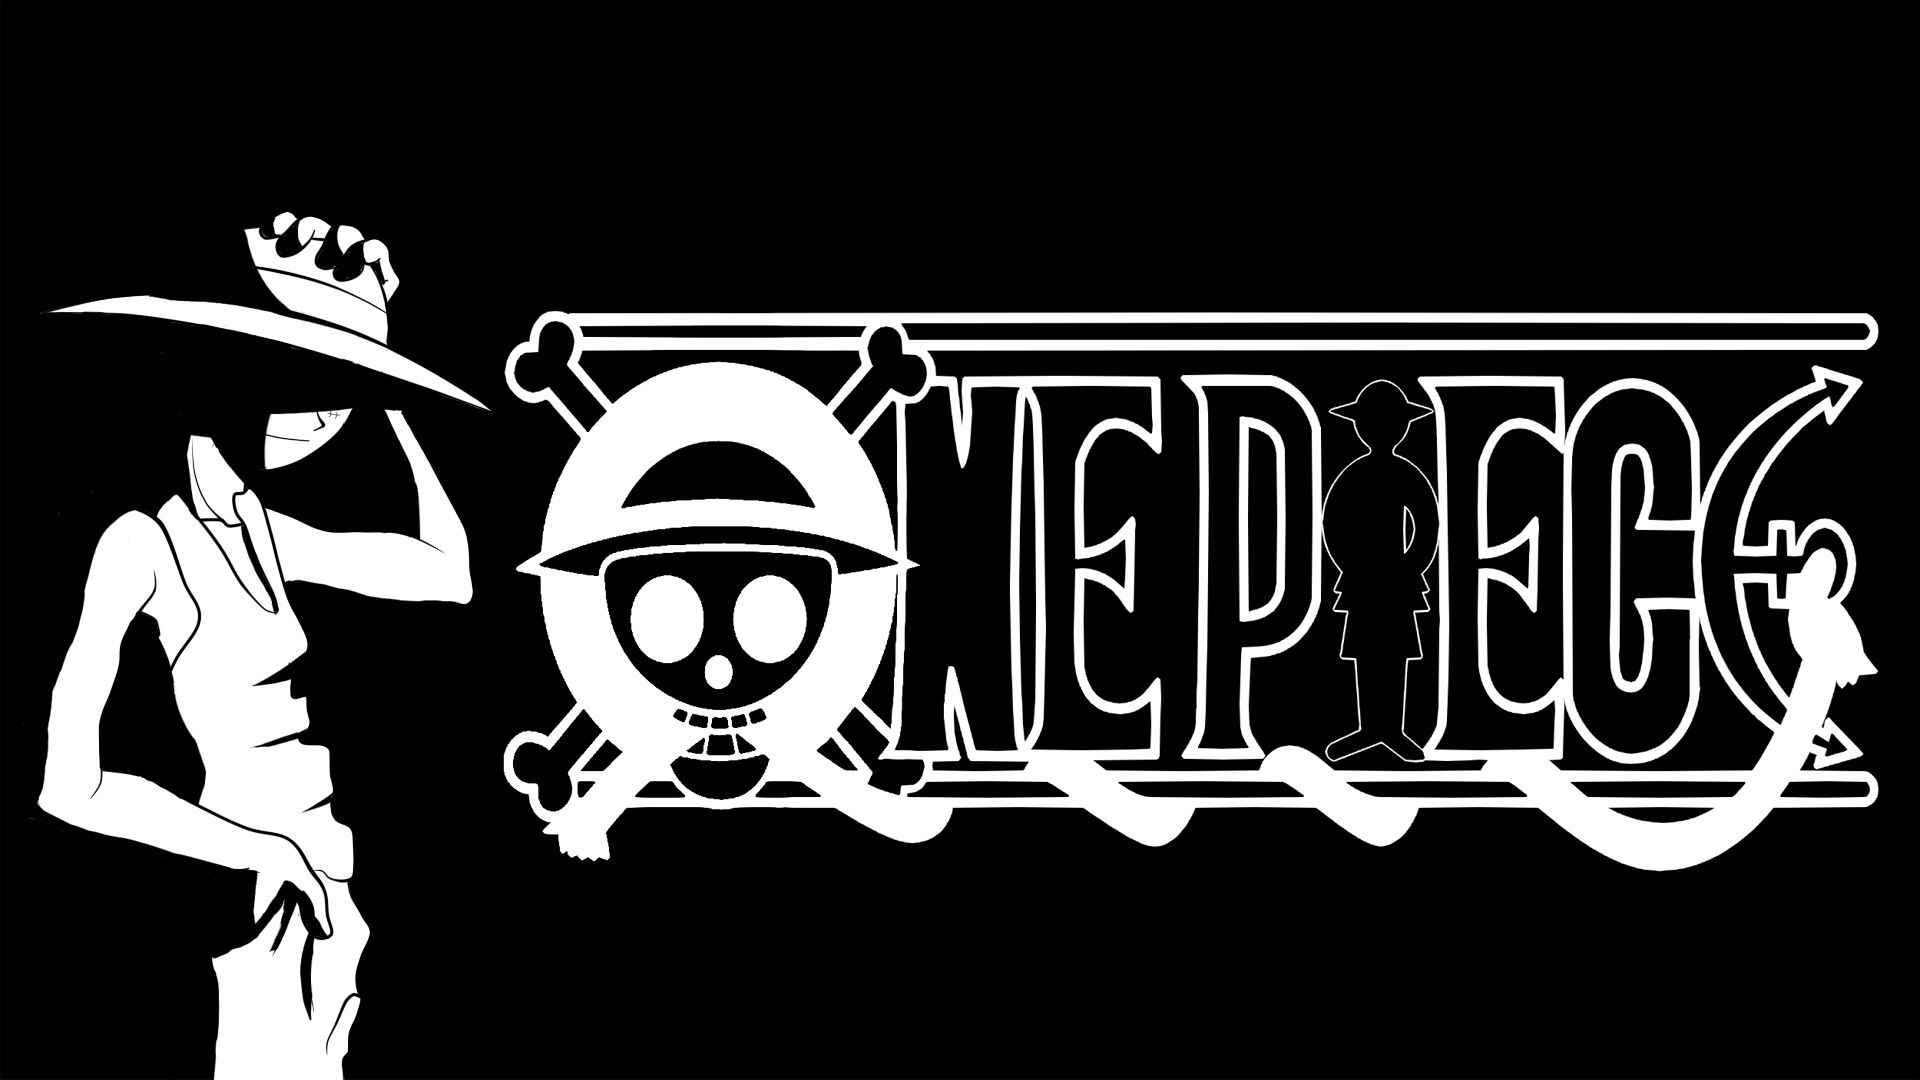 1076 one piece hd wallpapers backgrounds wallpaper - One piece wallpaper hd for android ...